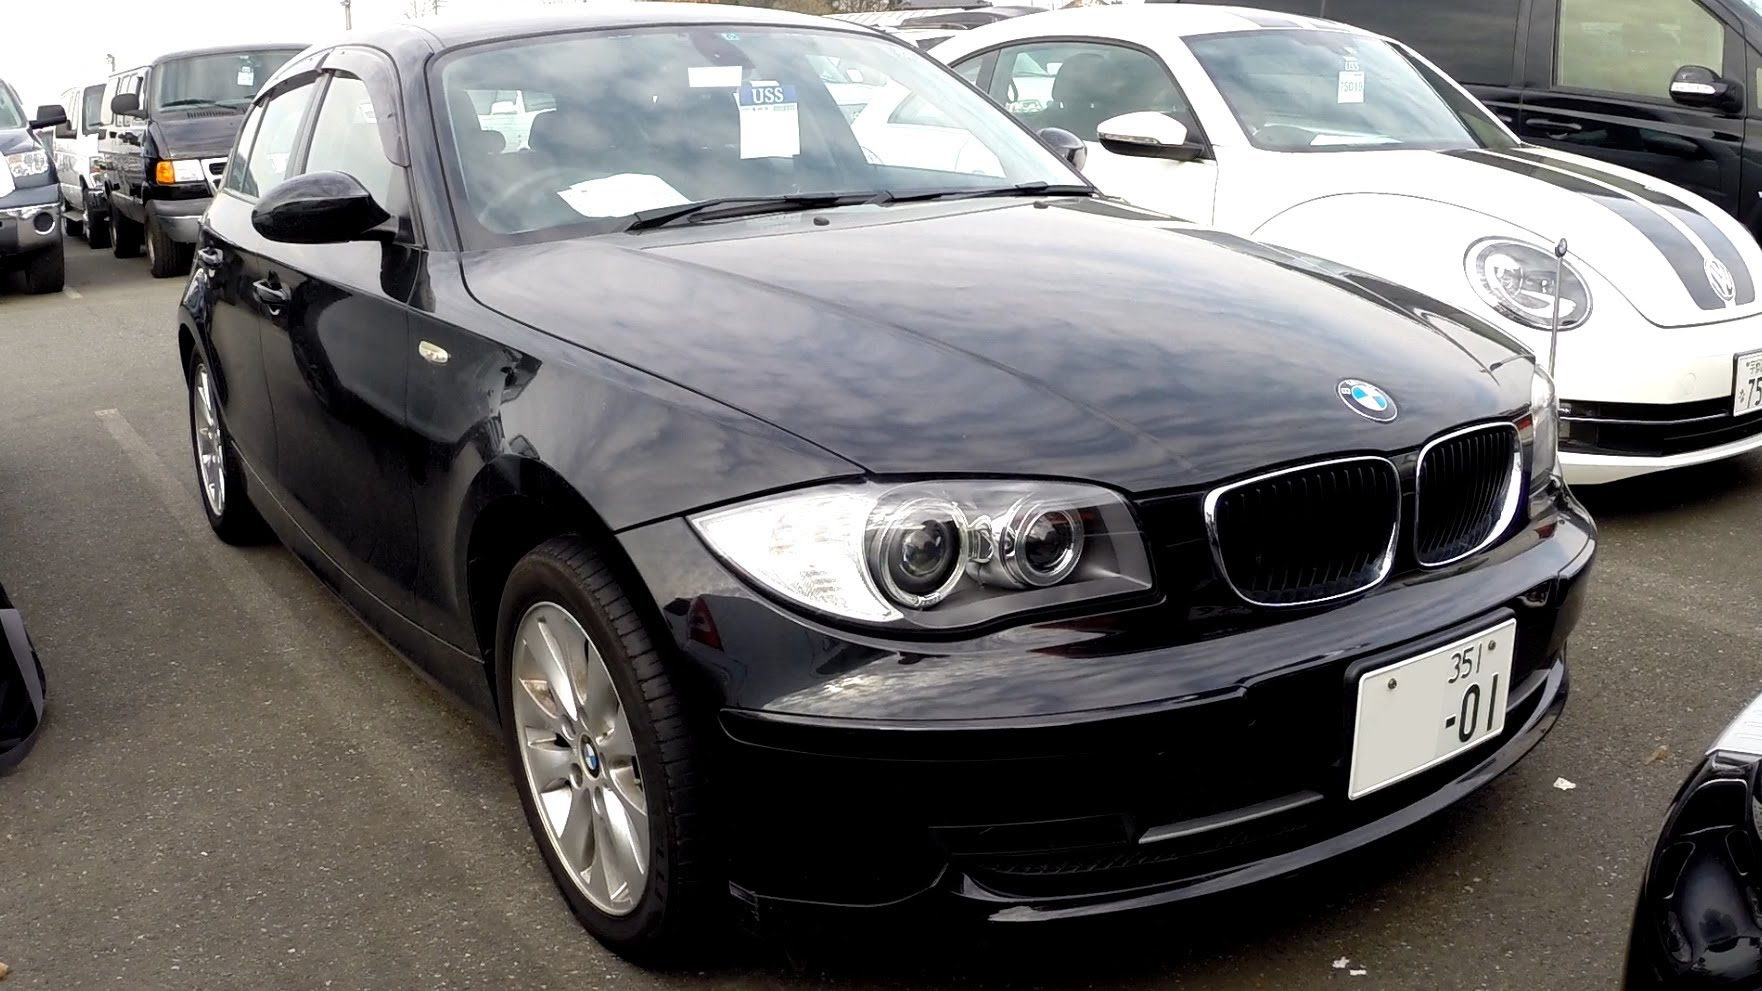 bmw 1 series 116i 2008 technical specifications interior and exterior photo. Black Bedroom Furniture Sets. Home Design Ideas